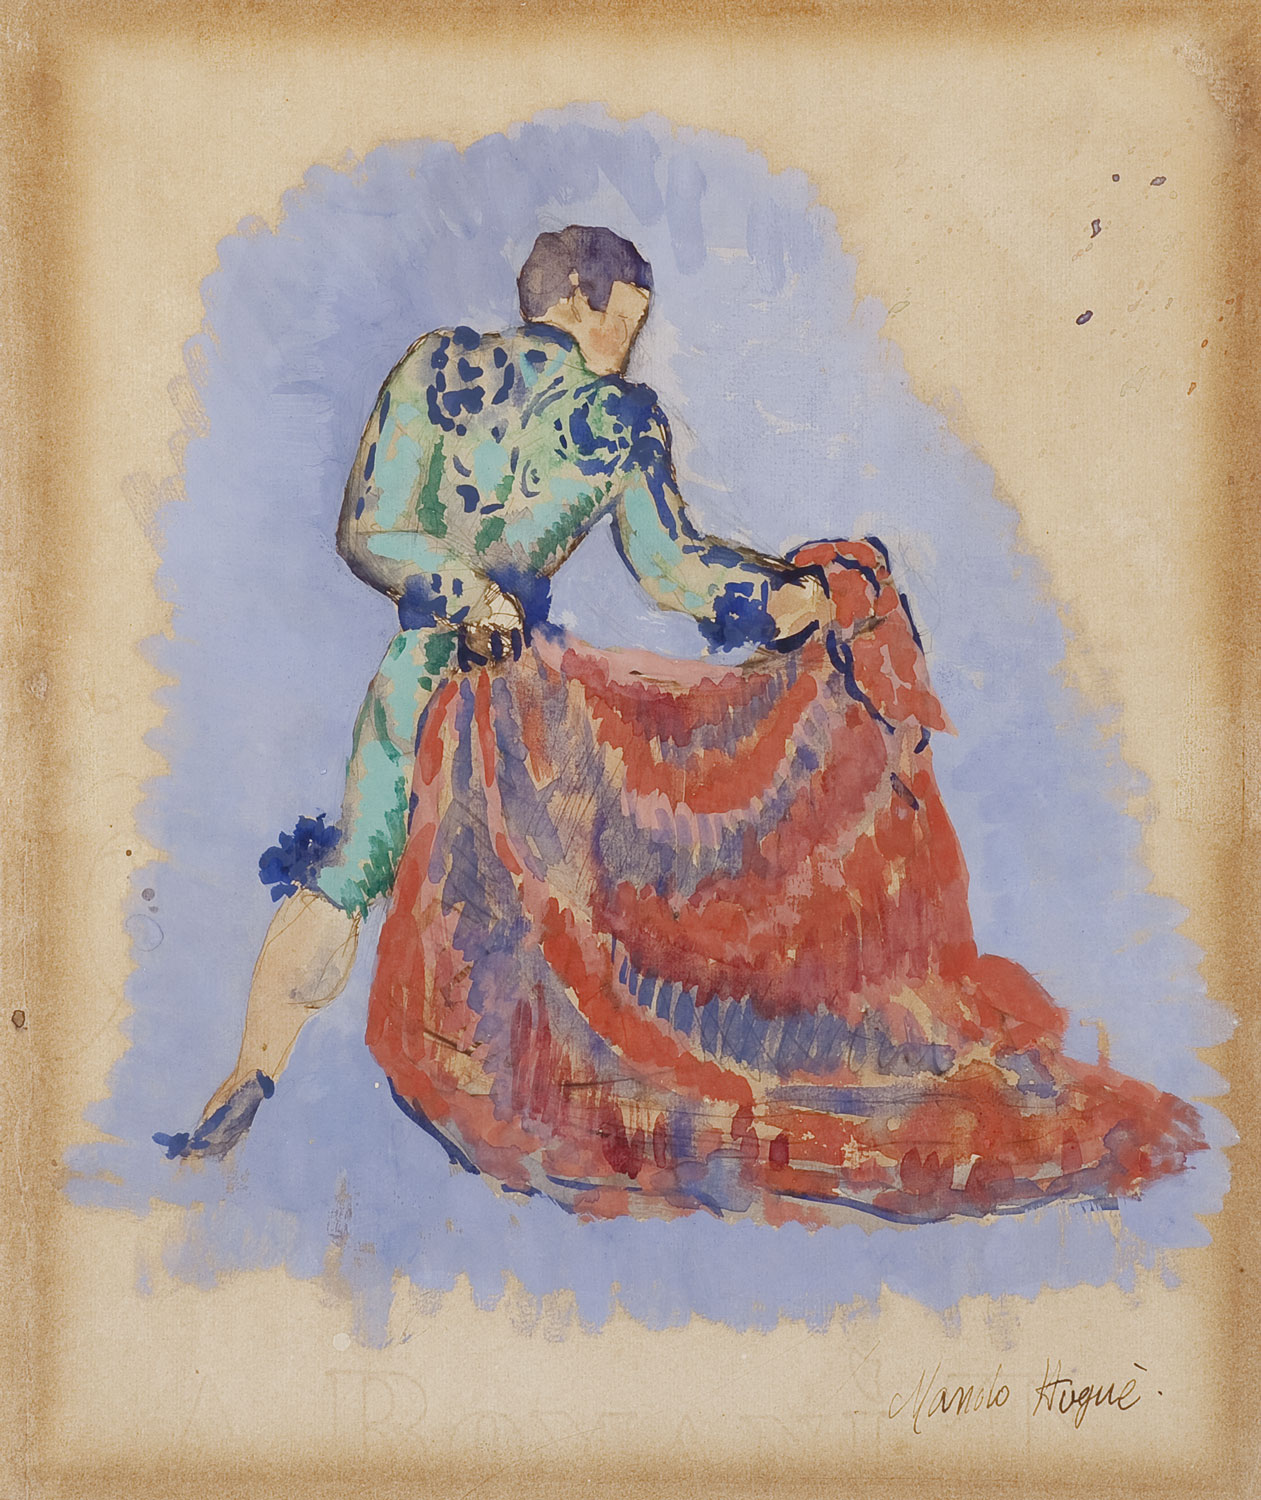 Bullfighter, Manolo Hugué